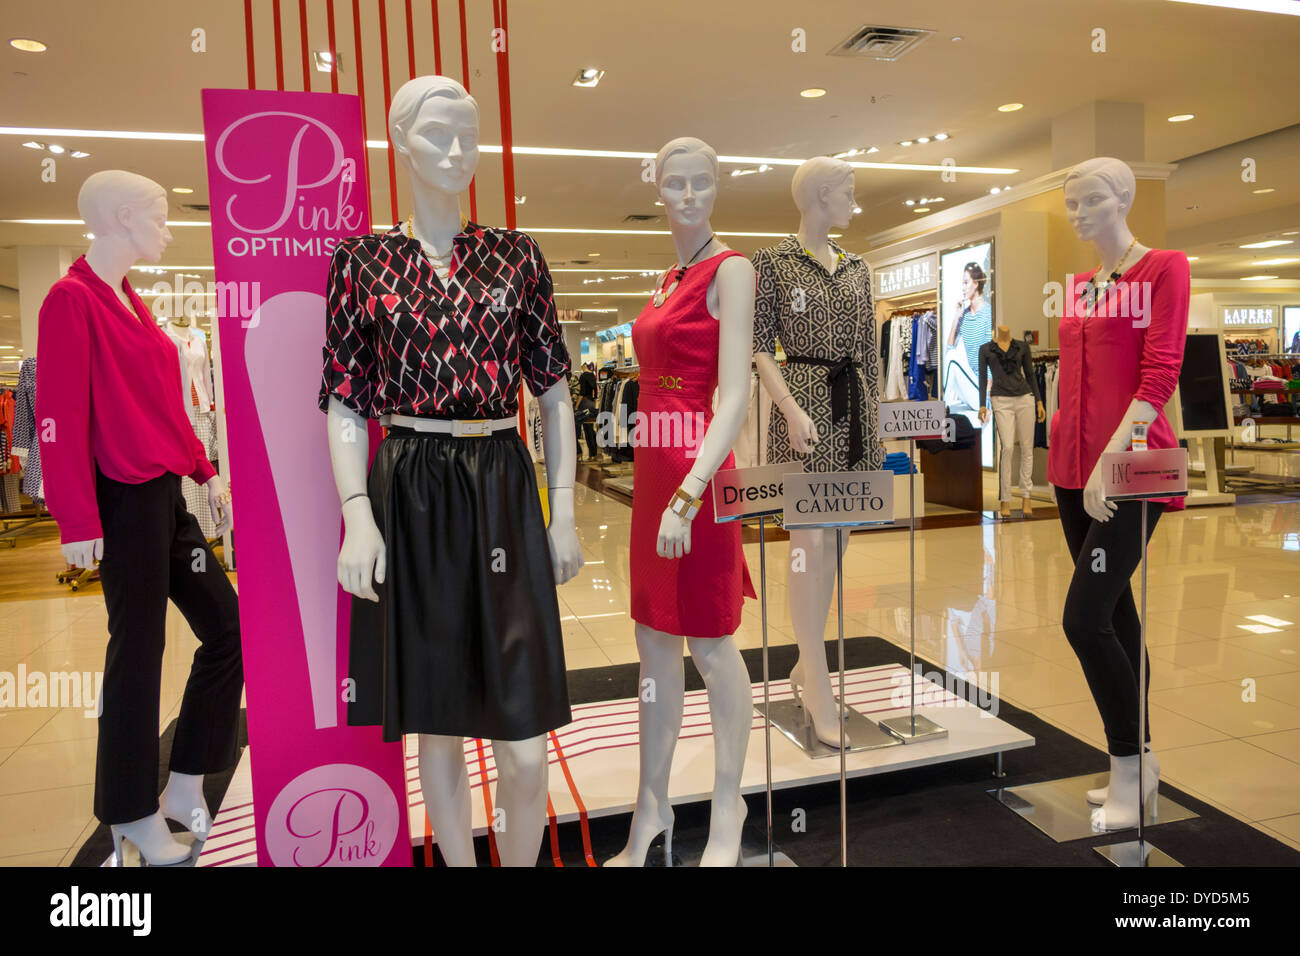 Vince Camuto Stock Photos Images Alamy Millenia Olivia Abstract Dress Orlando Florida The Mall At Shopping Sale Fashion Display Macys Department Store Womens Clothing